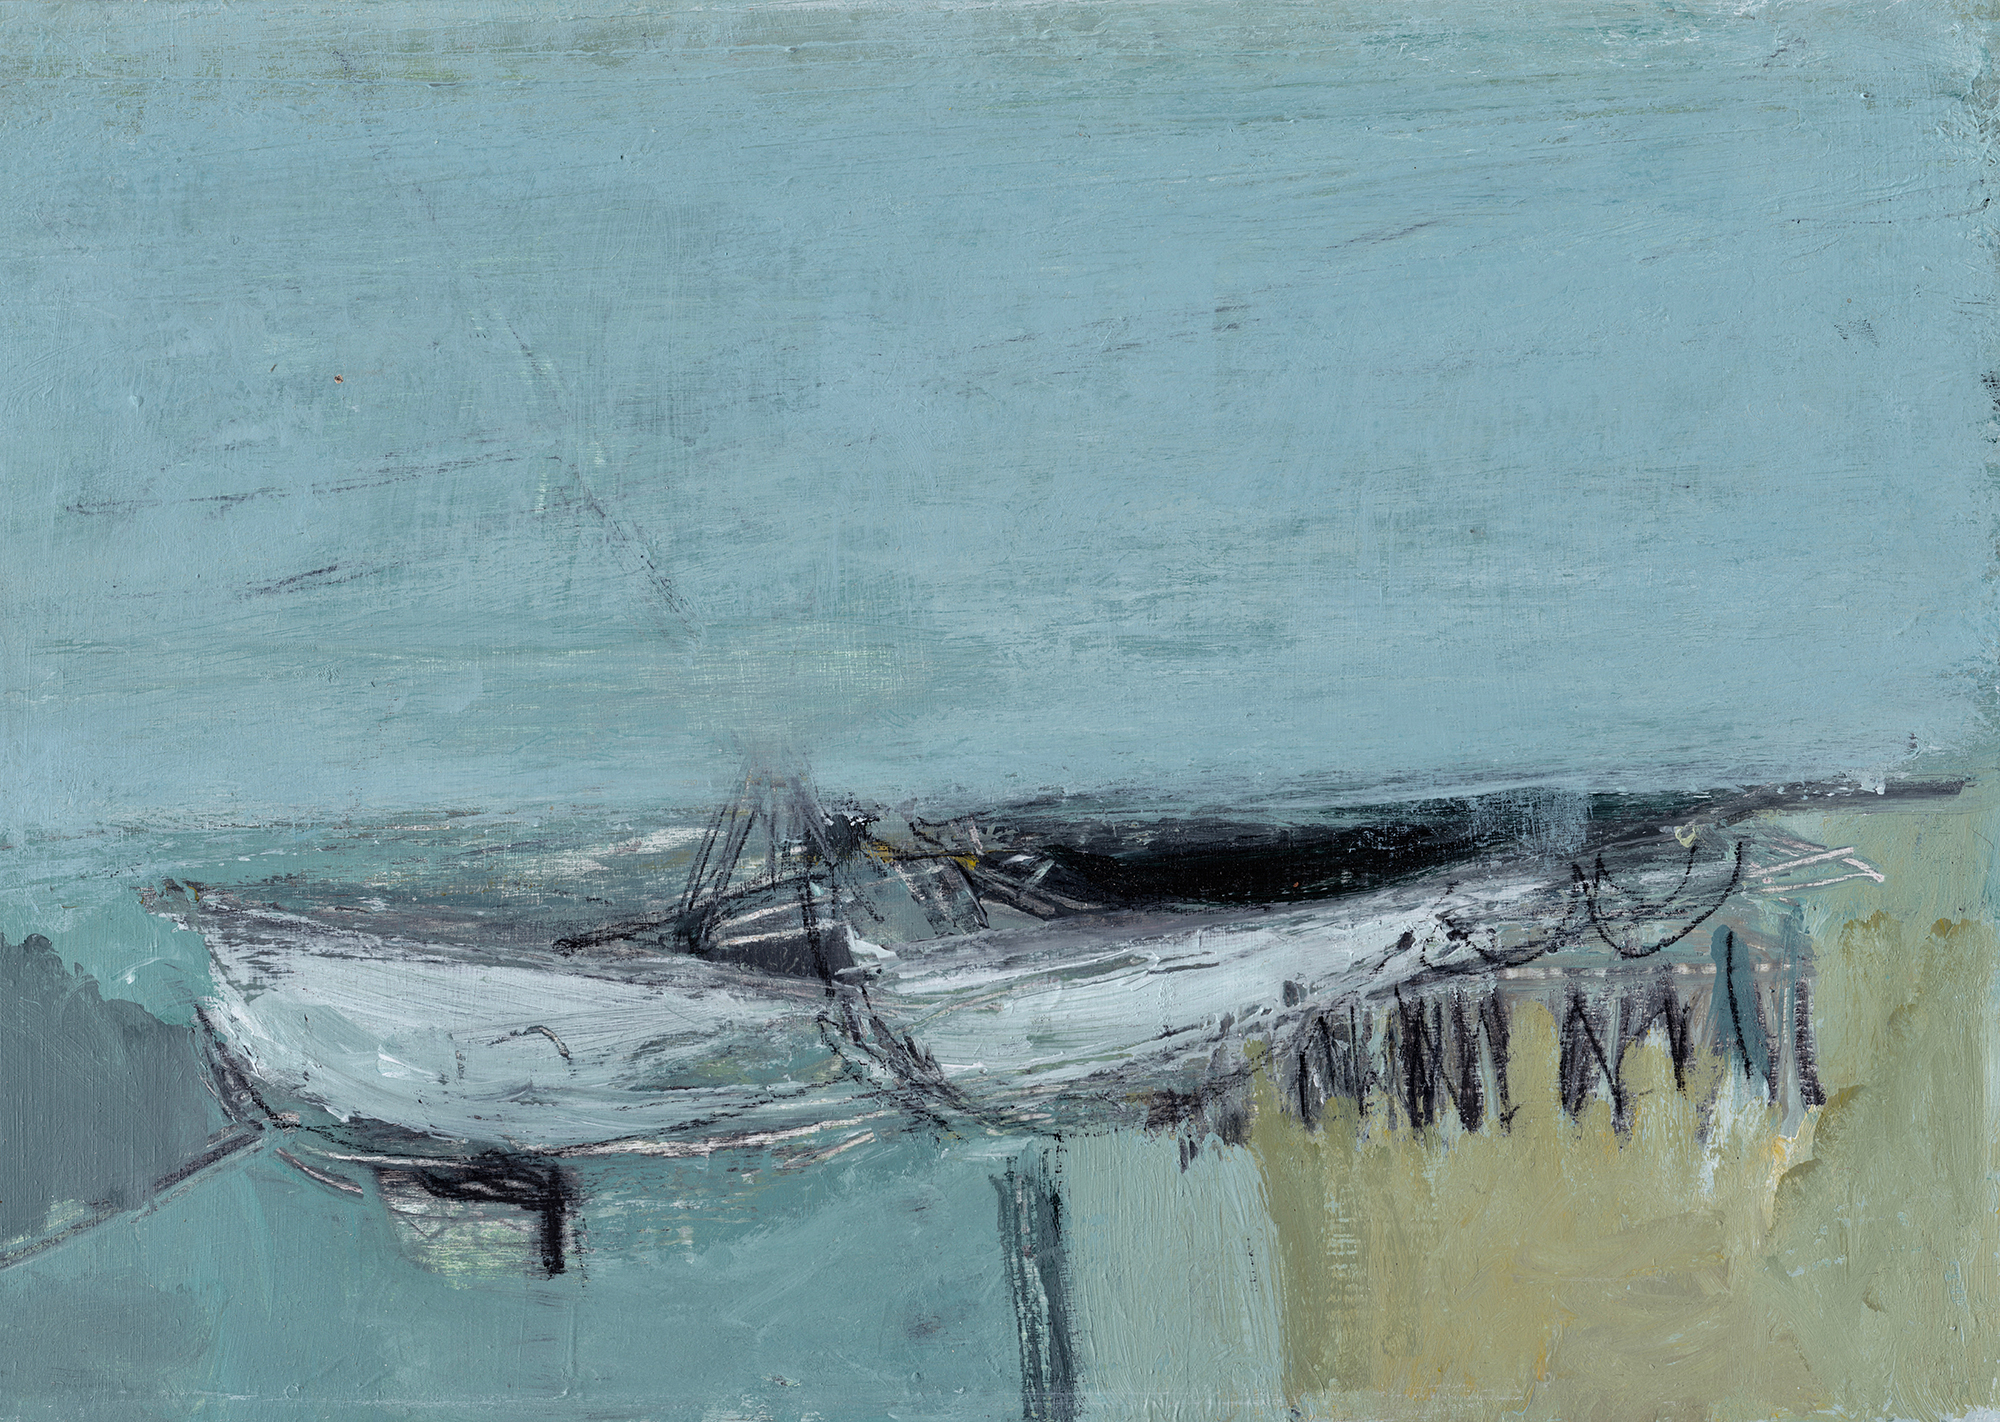 Silent Tides Turn  (2018) | 29.6cm x 20cm, mixed media on panel, sold